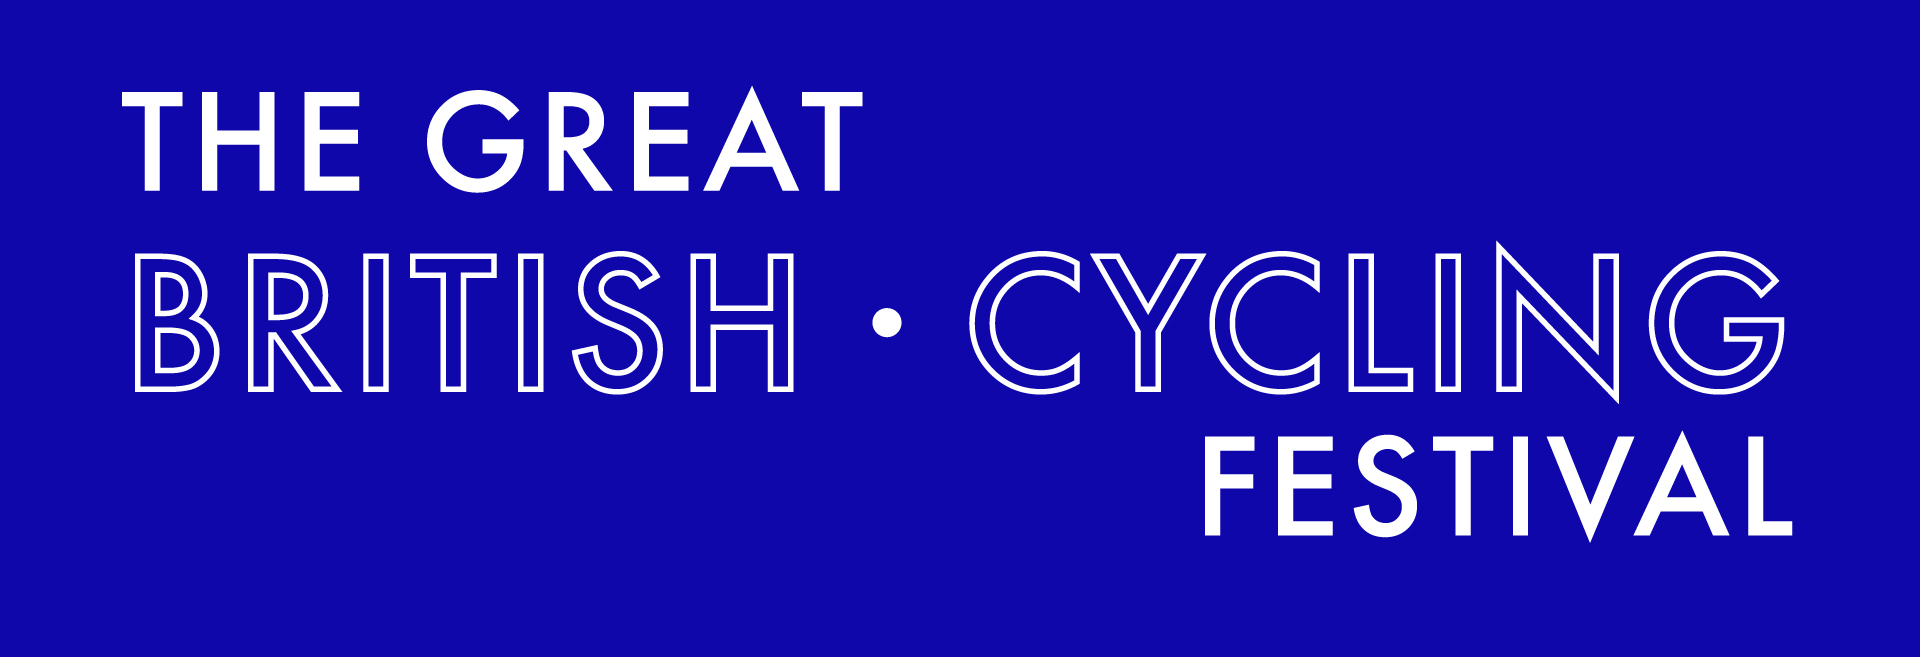 The Great British Cycling Festival